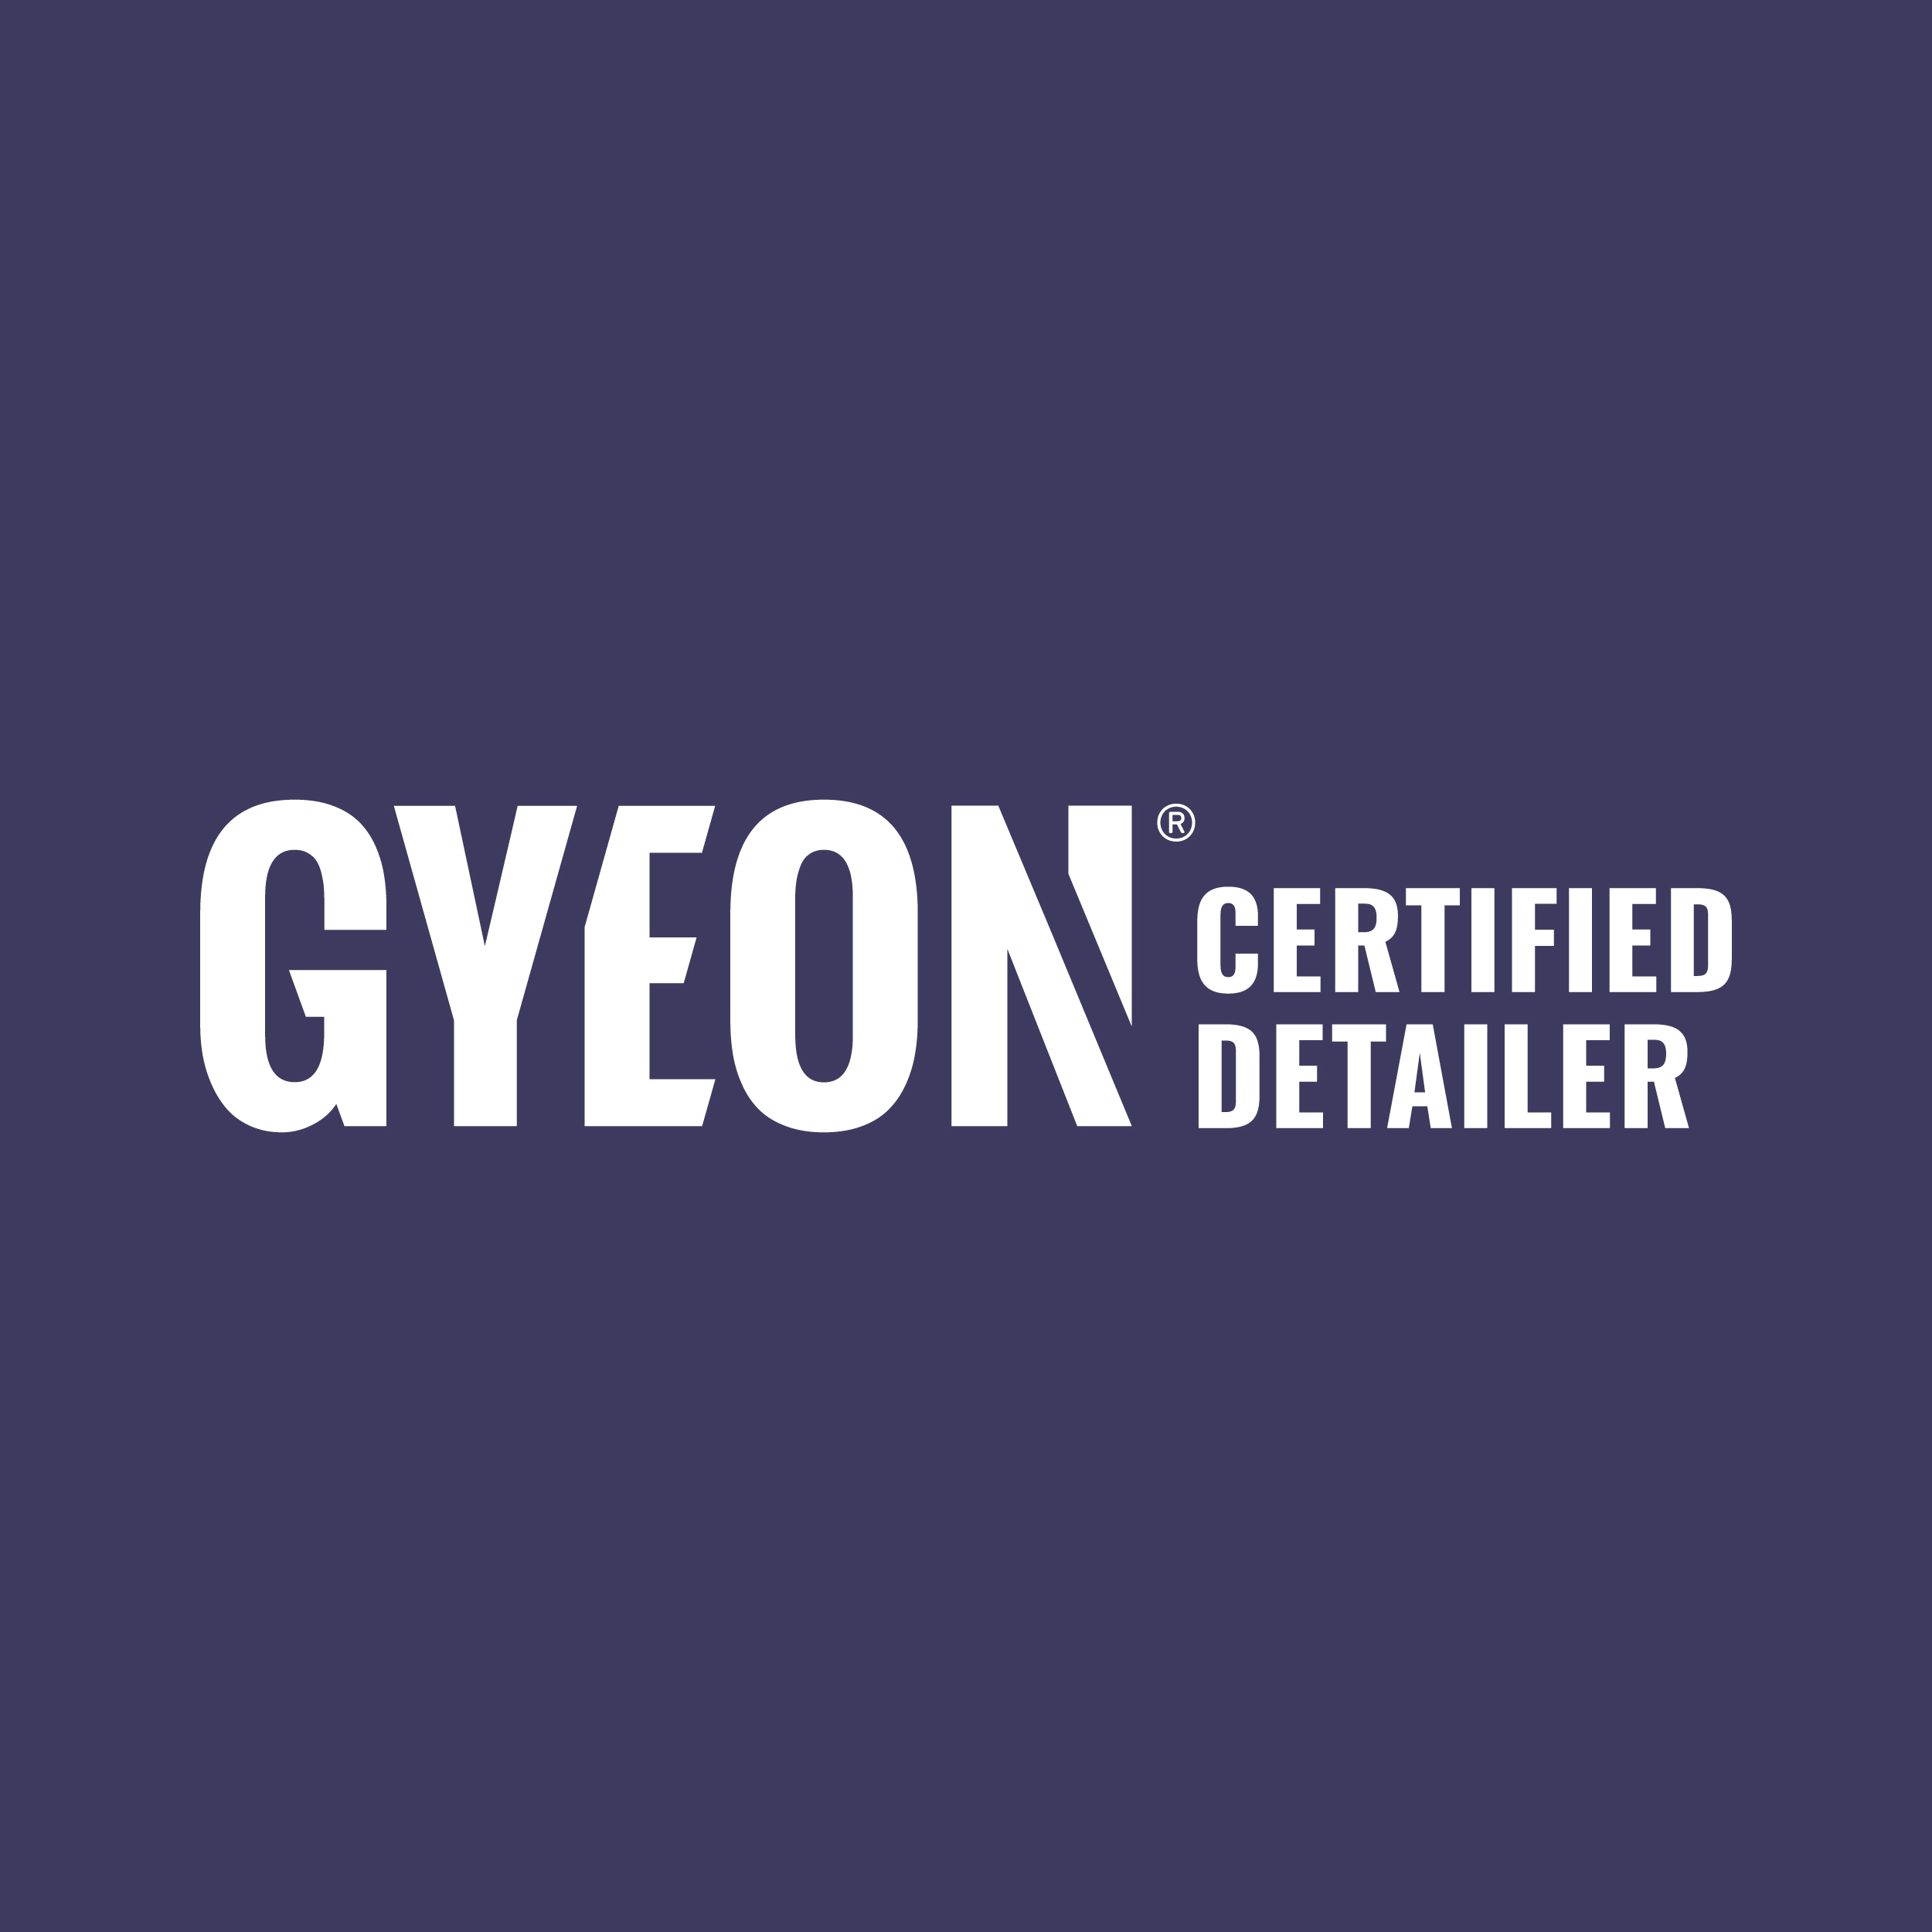 custom detailing studio including gyeon logo